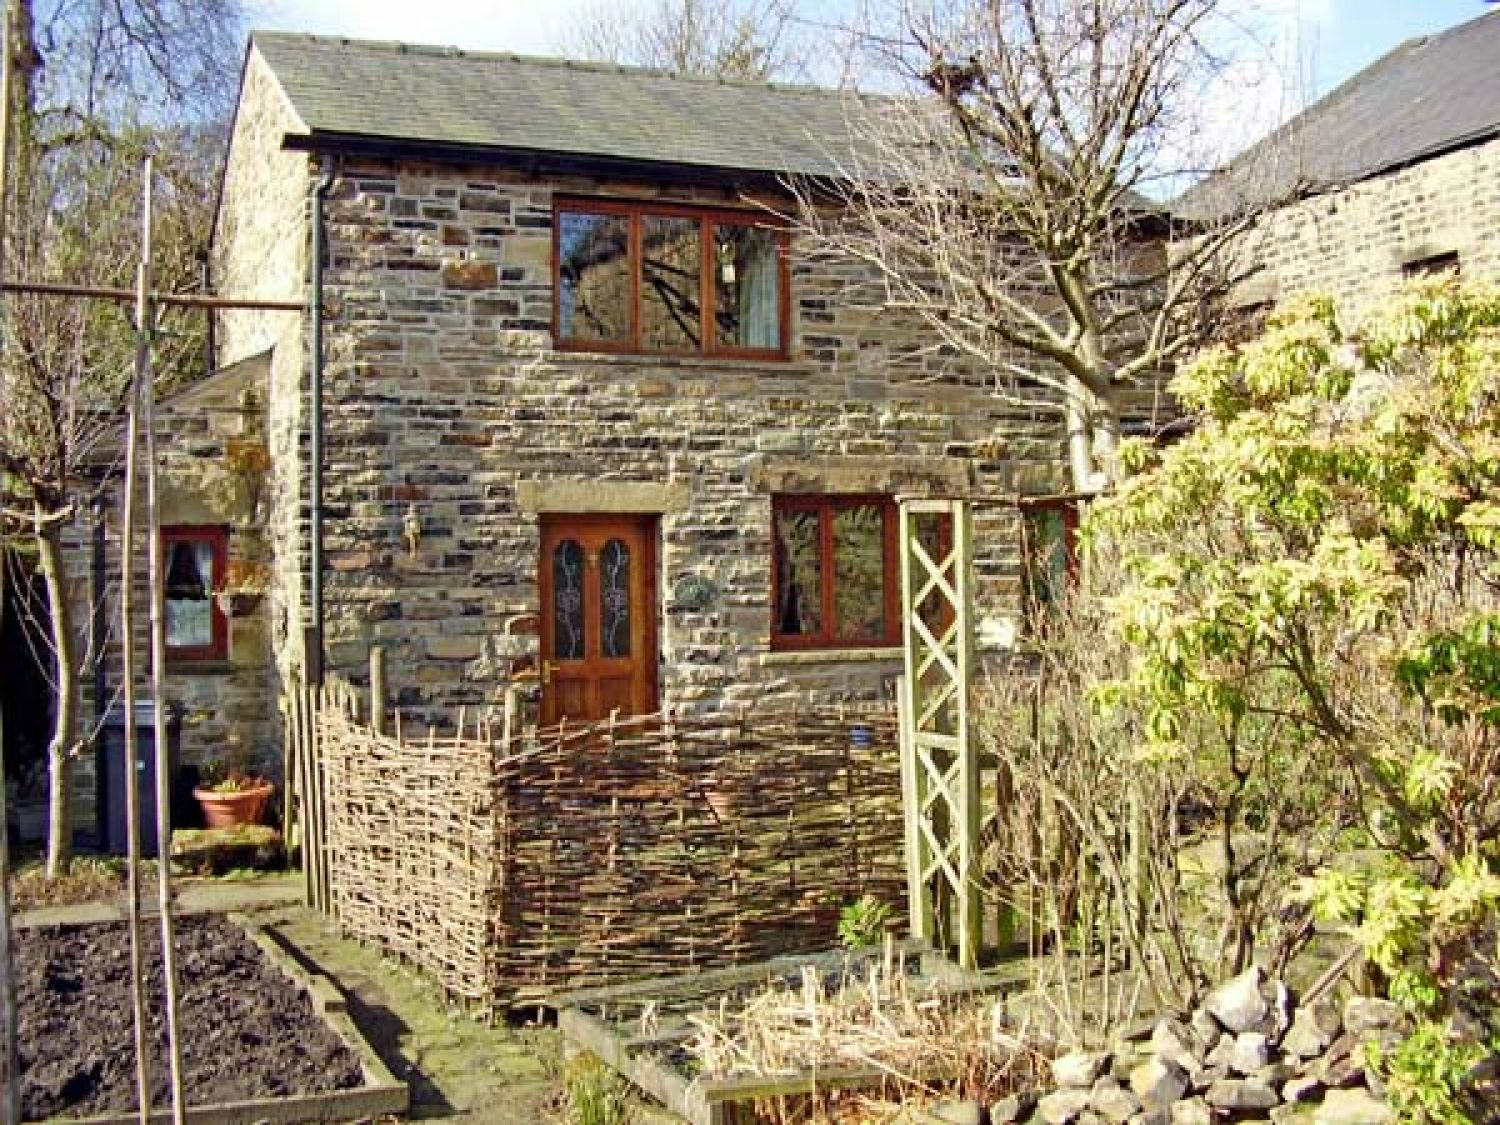 Rowan Tree Cottage - Peak District - 1970 - photo 1